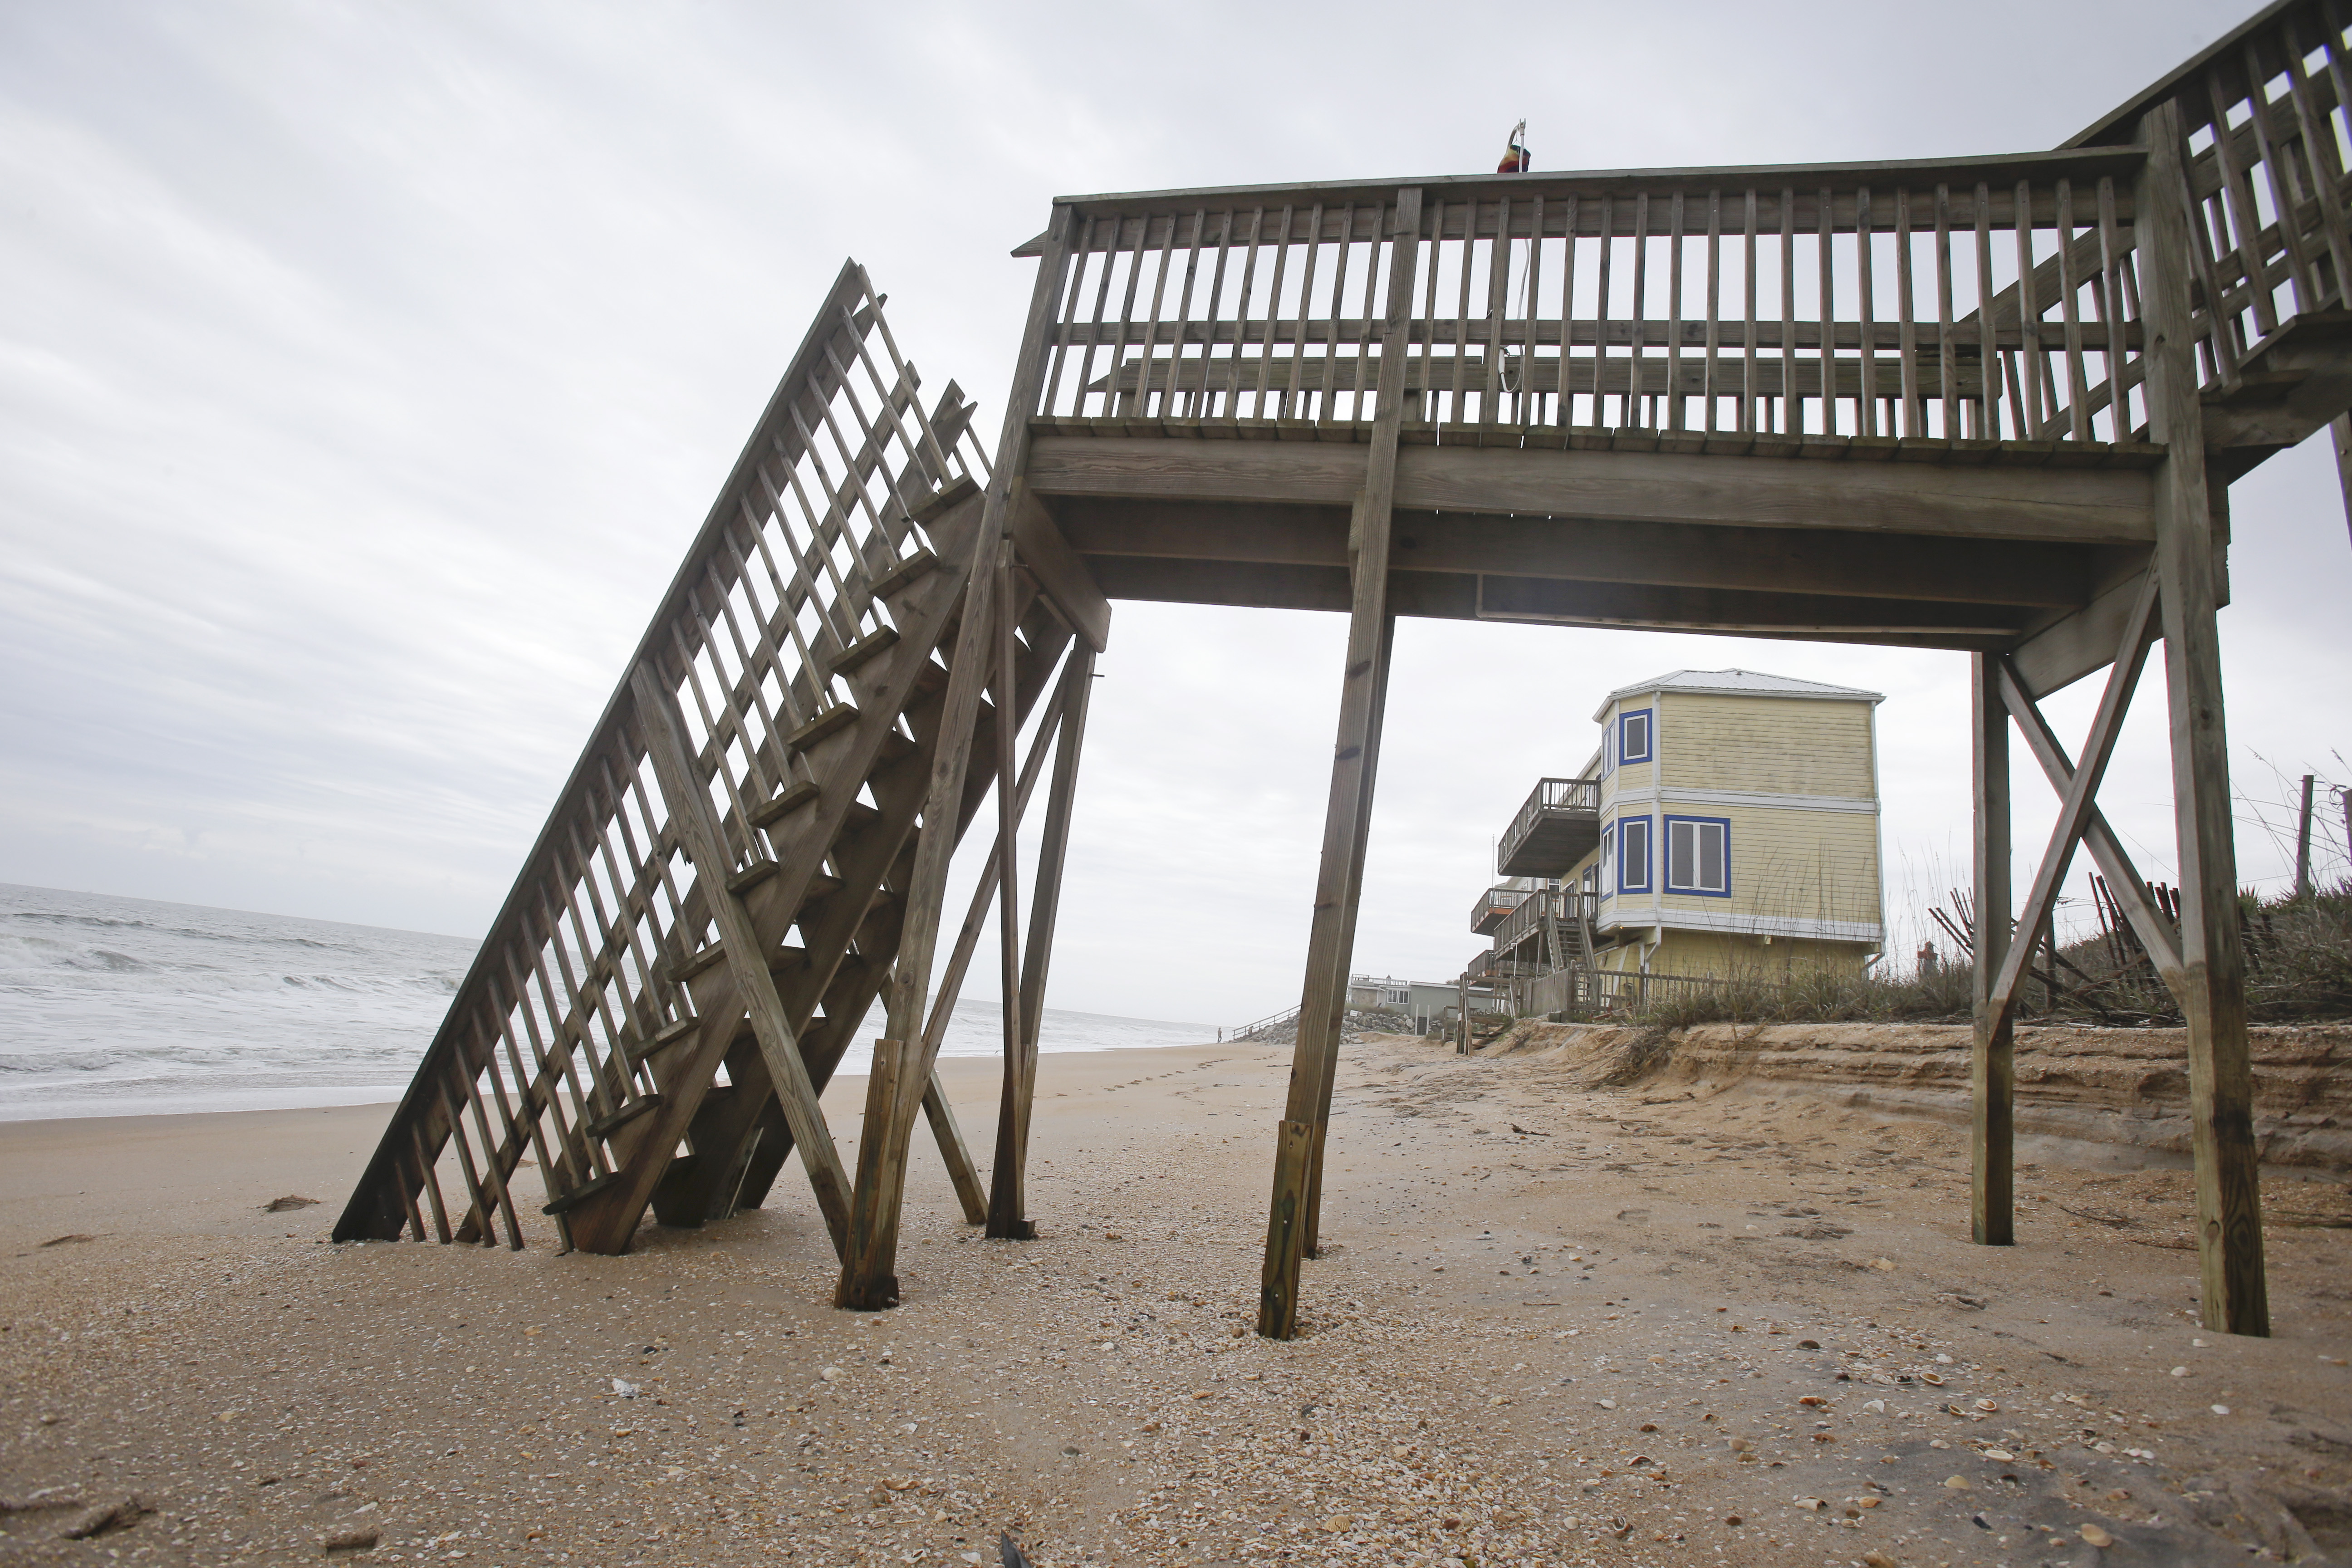 Marvelous 4, 2015 Photo, Beach Access Stairs Are Seen